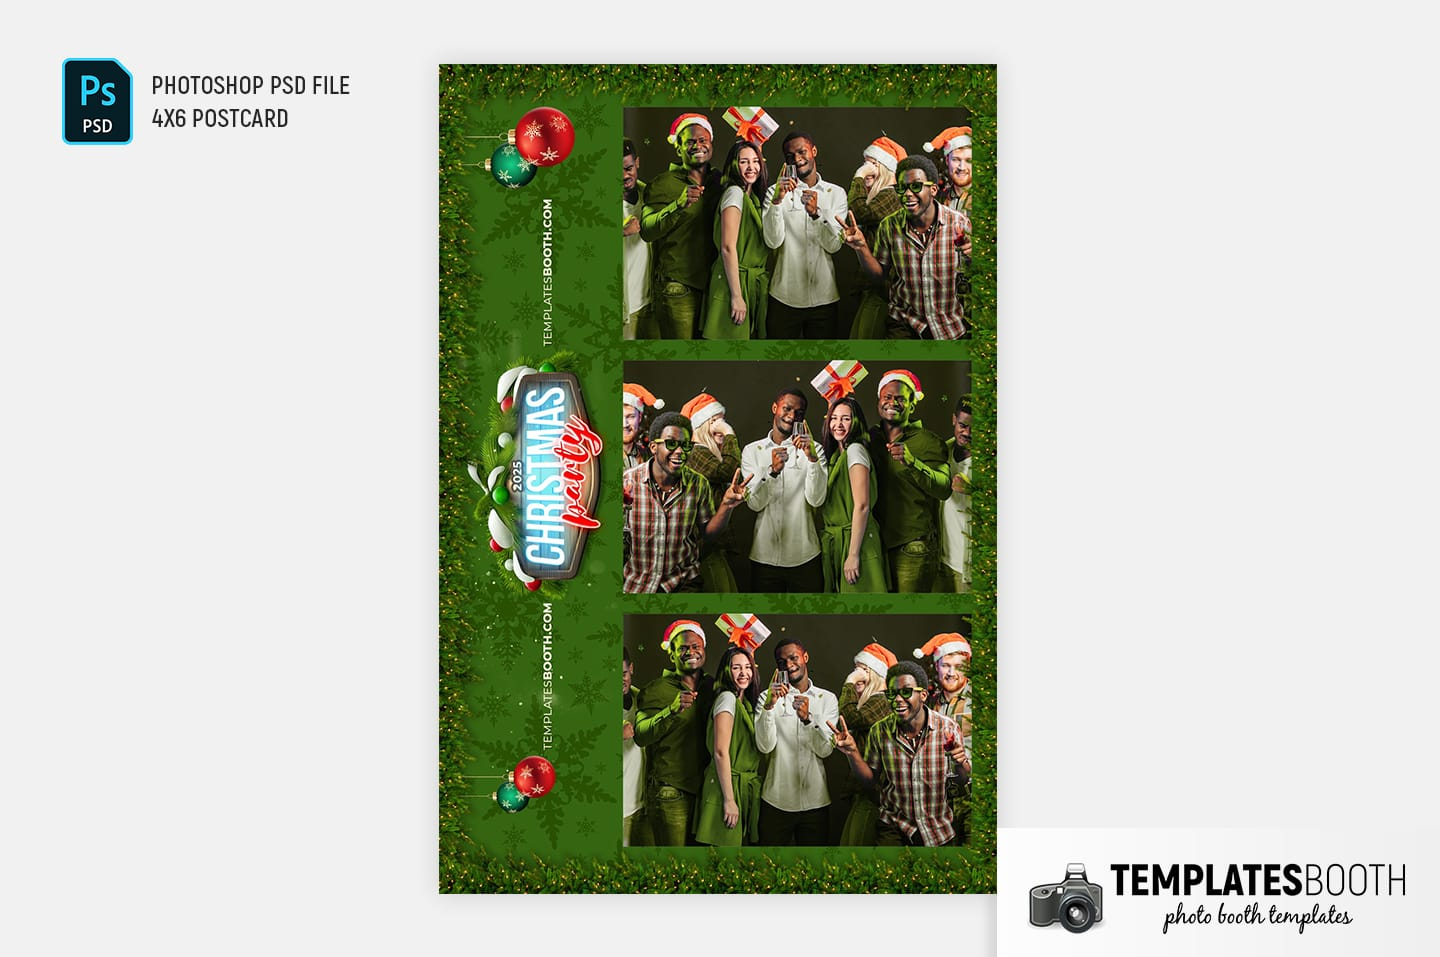 Green Christmas Photo Booth Template (4x6 postcard portrait)